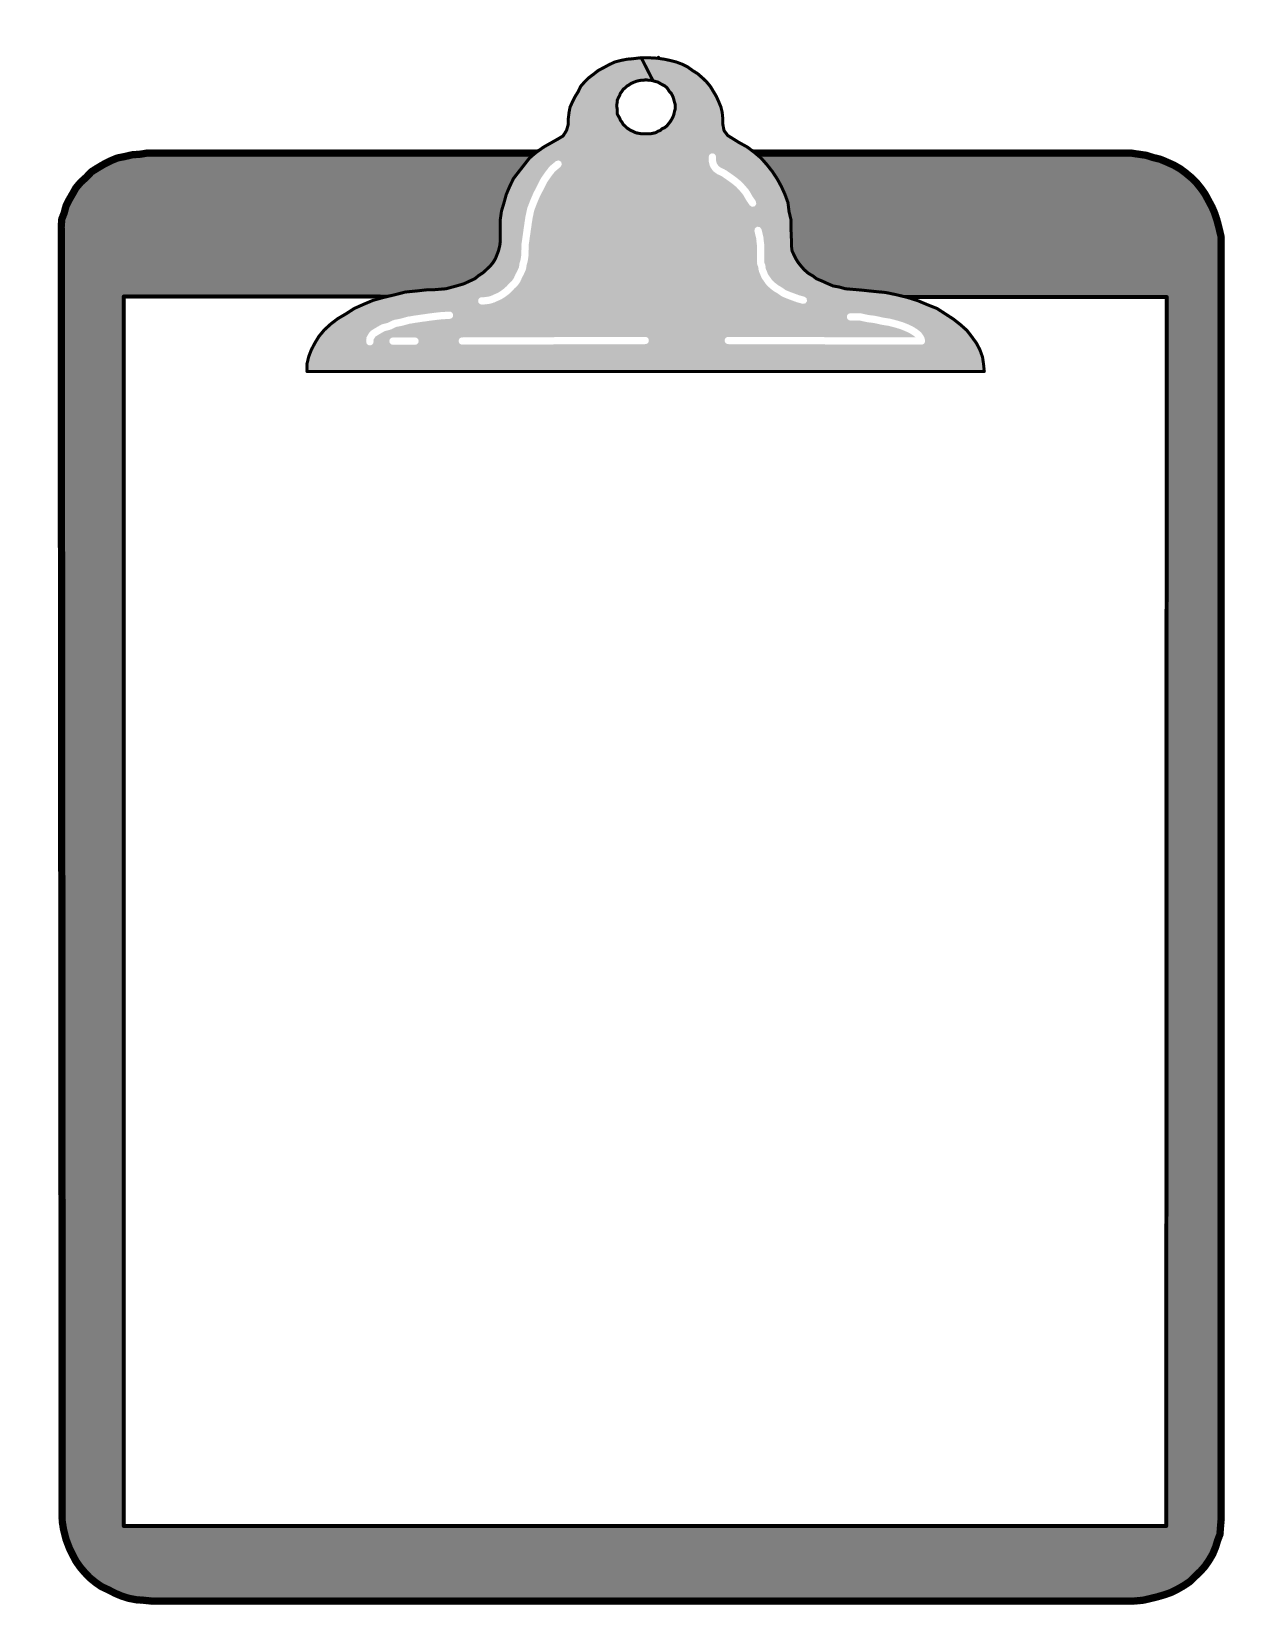 Clipboard Boardmember Black And White Cl-Clipboard boardmember black and white clipart kid-2